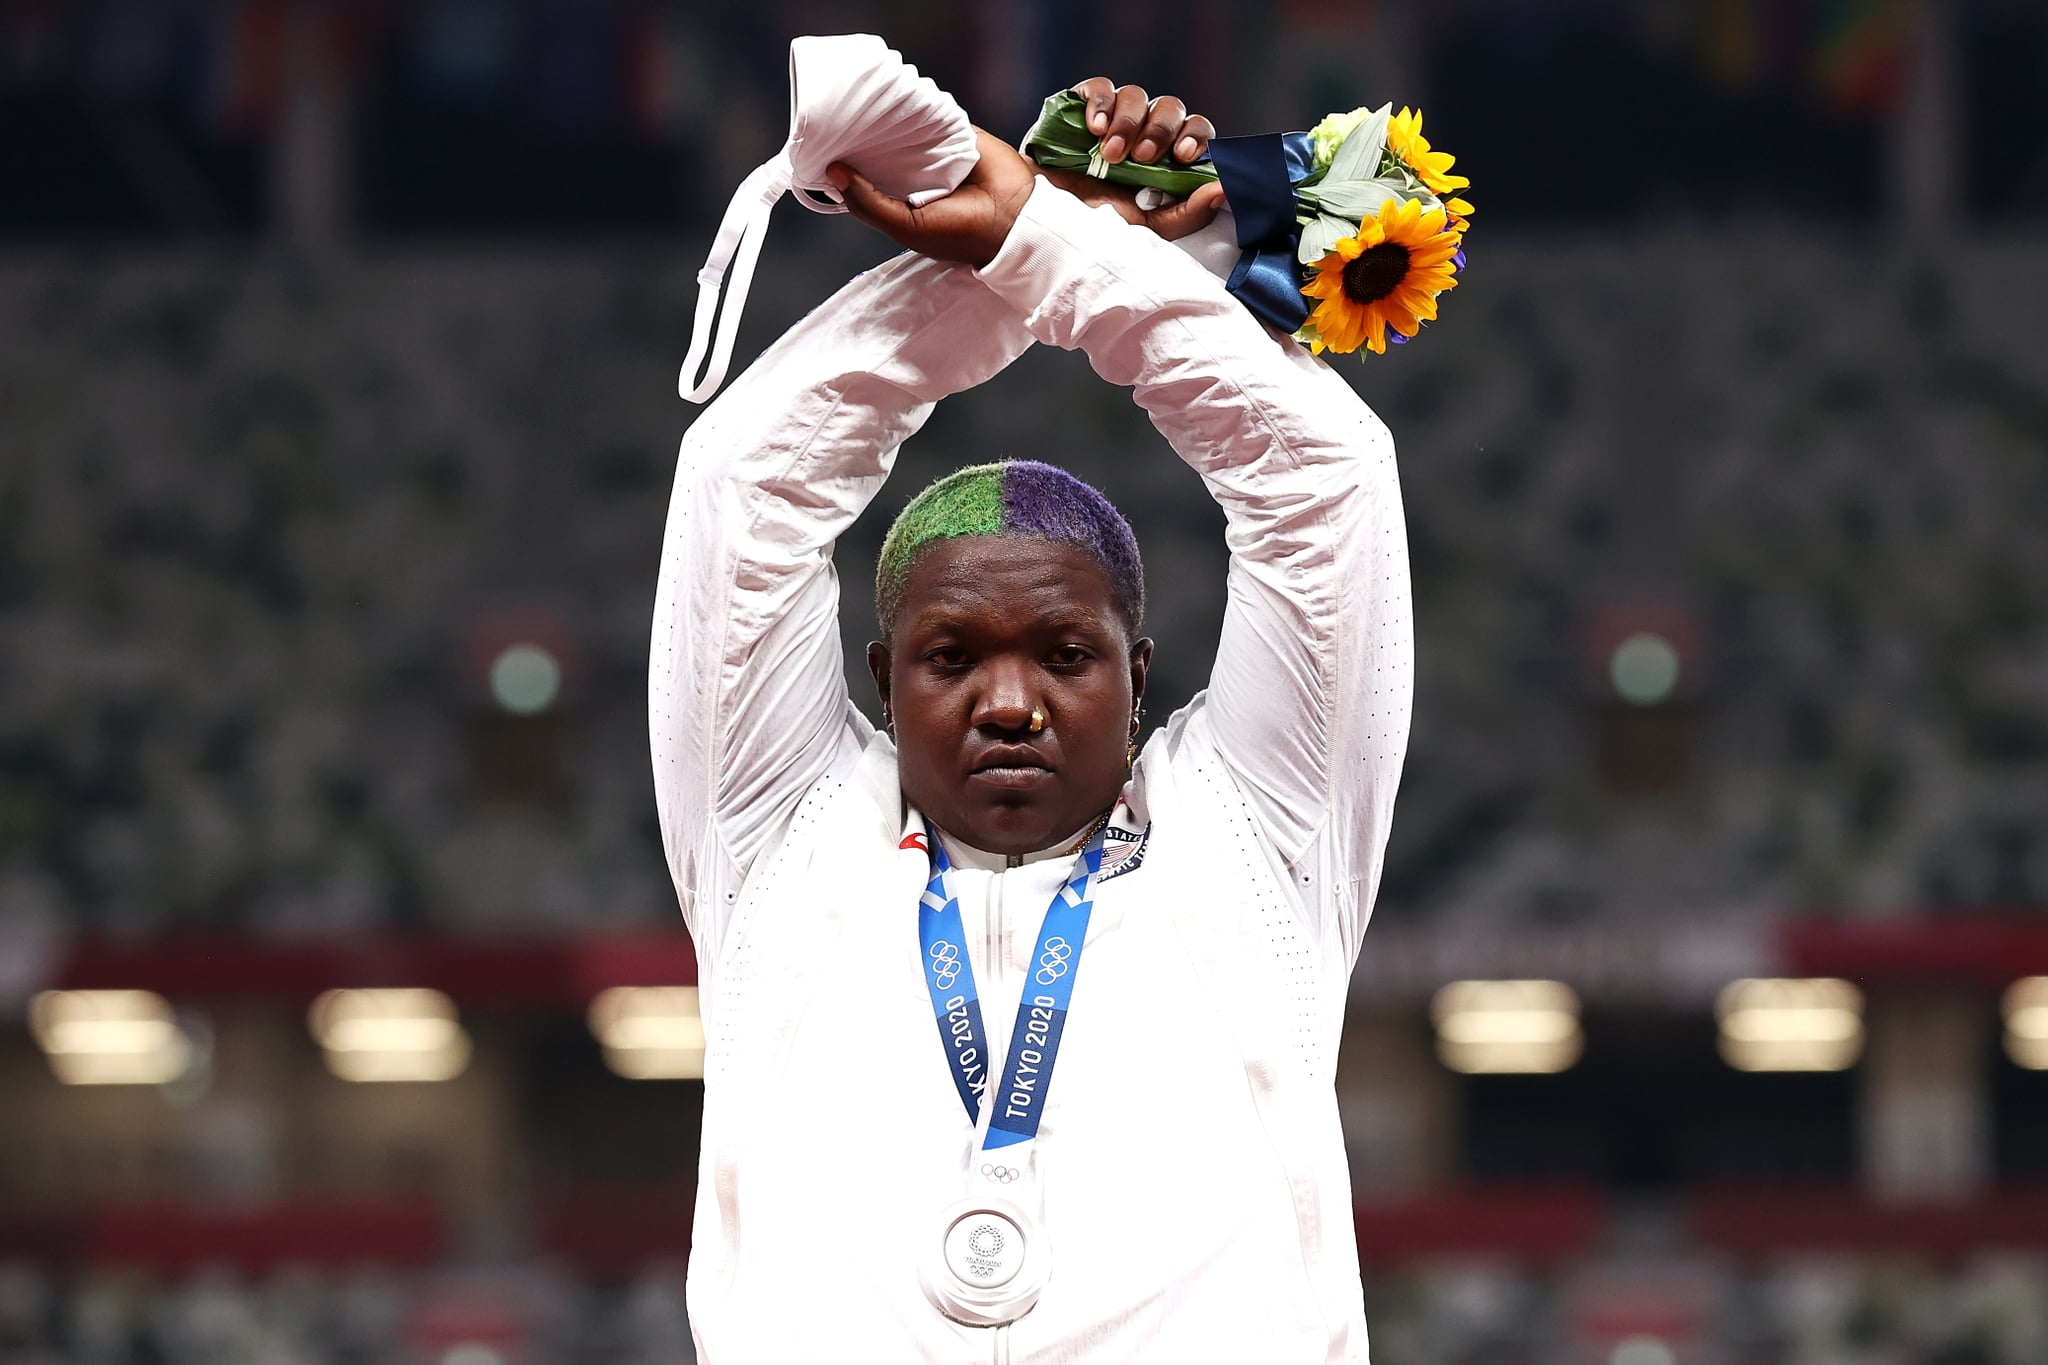 TOKYO, JAPAN - AUGUST 01: Raven Saunders of Team United States makes an 'X' gesture during the medal ceremony for the Women's Shot Put on day nine of the Tokyo 2020 Olympic Games at Olympic Stadium on August 01, 2021 in Tokyo, Japan. (Photo by Ryan Pierse/Getty Images)